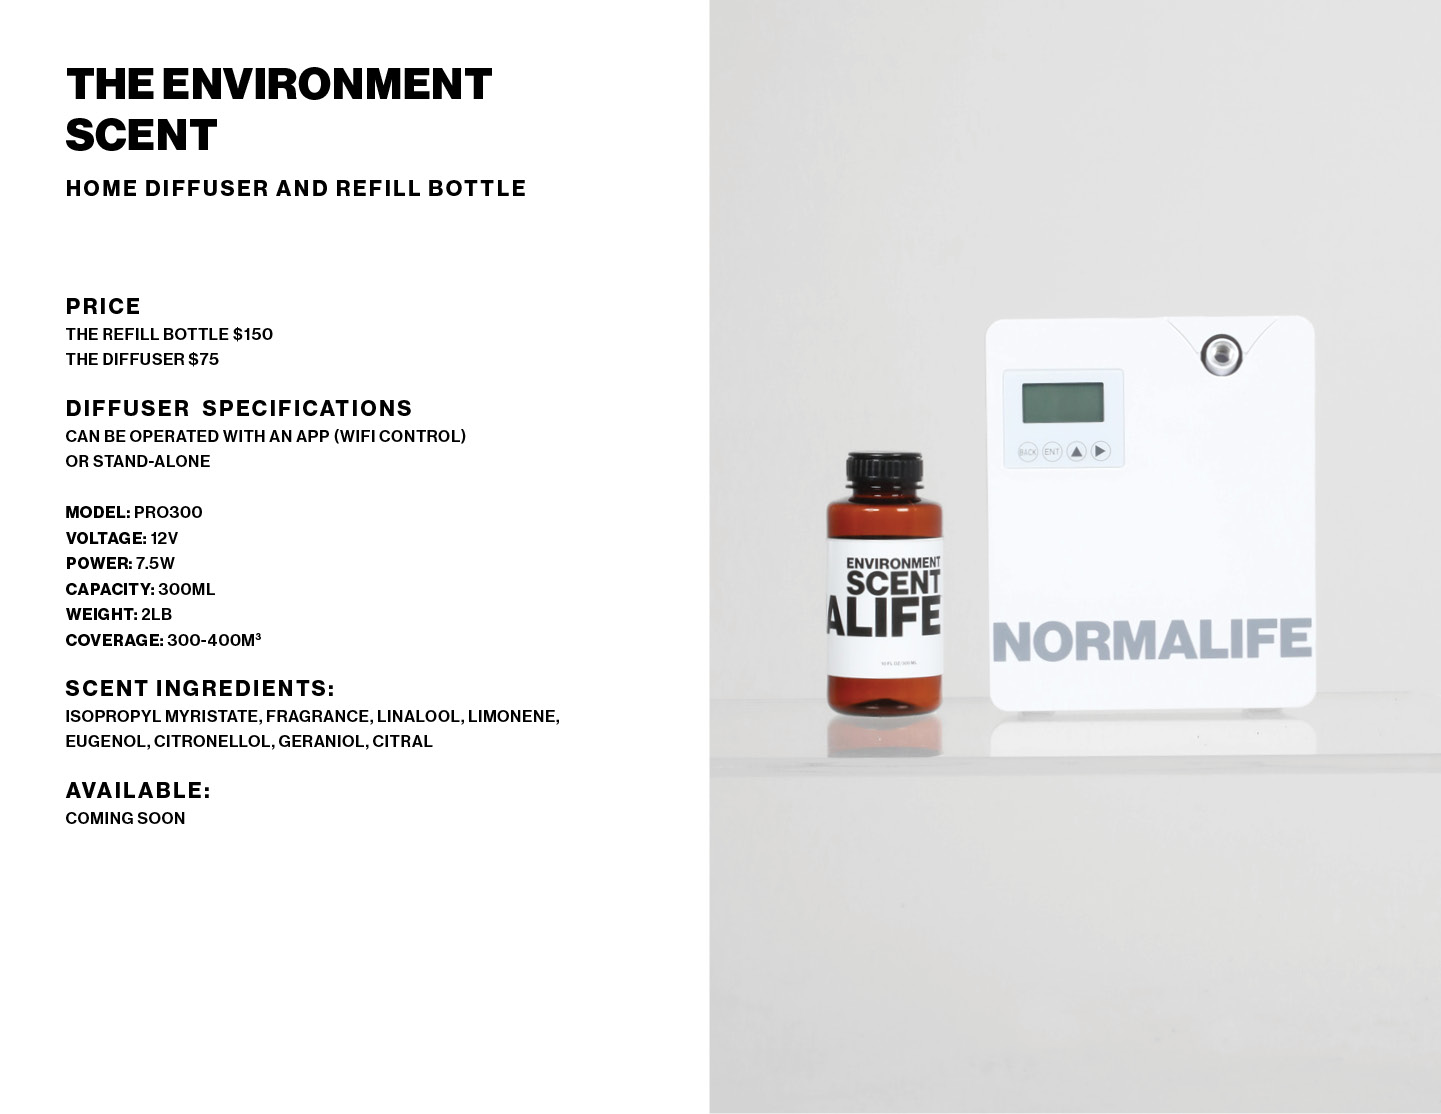 Environment Scent product info